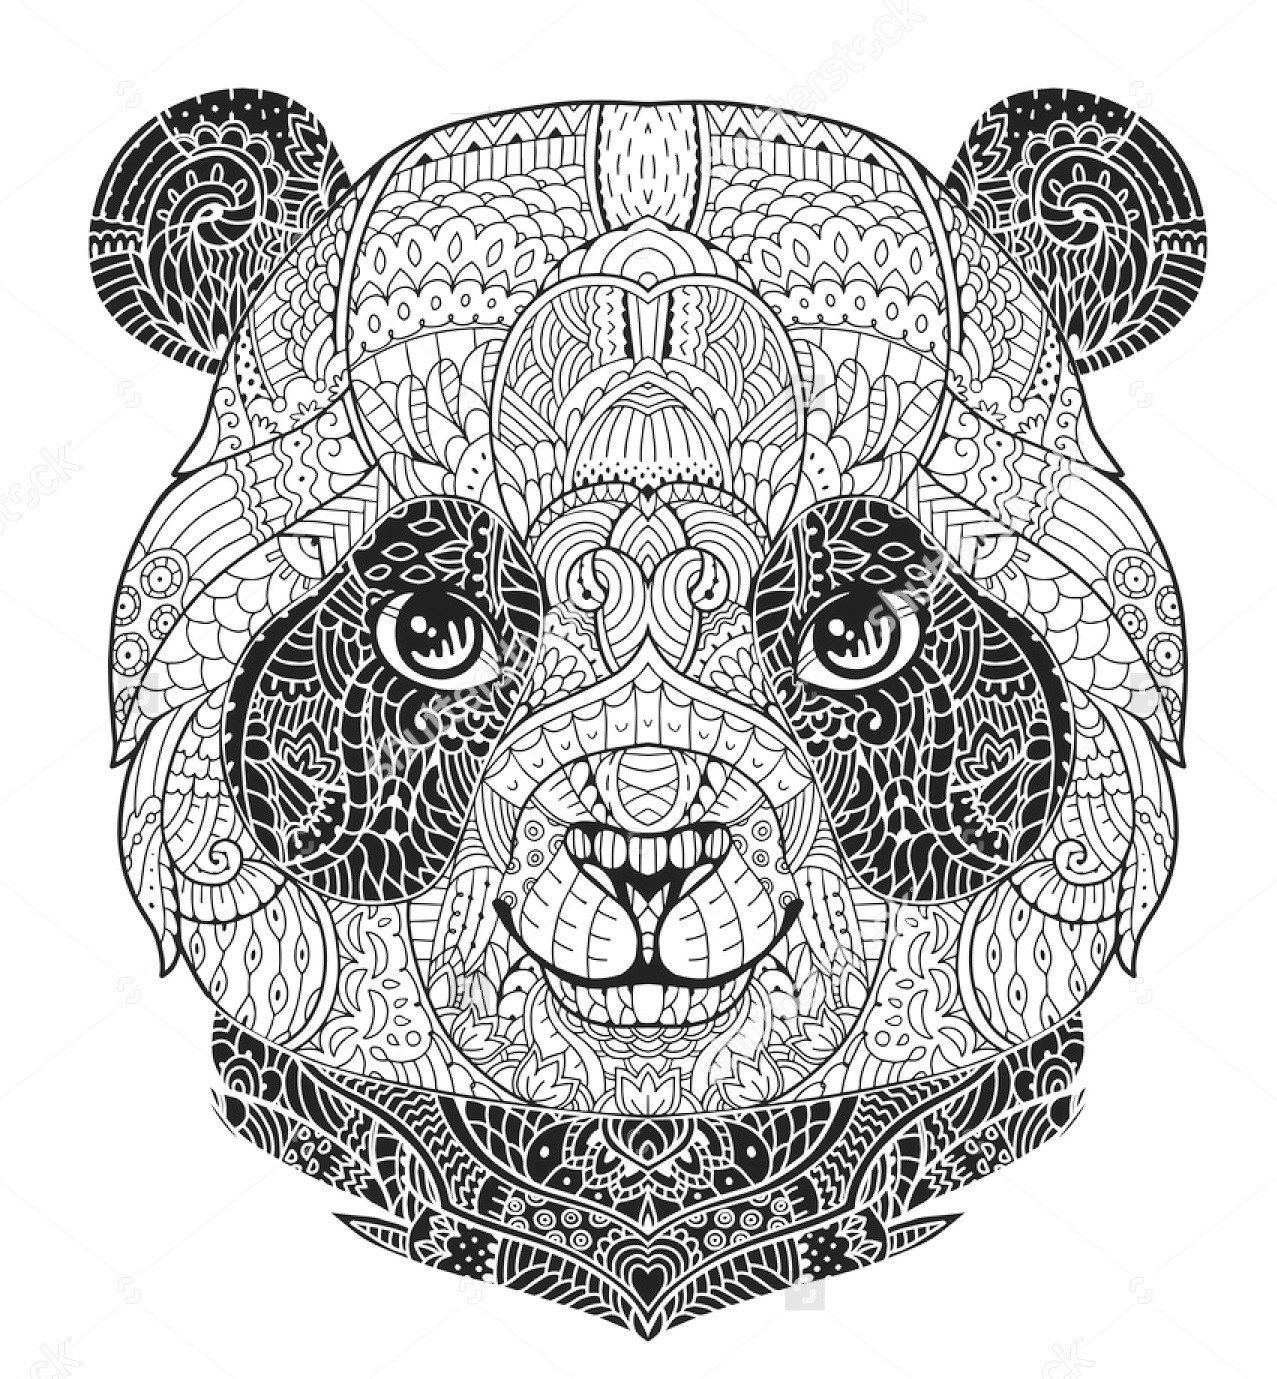 panda coloring page panda coloring pages best coloring pages for kids coloring page panda 1 2